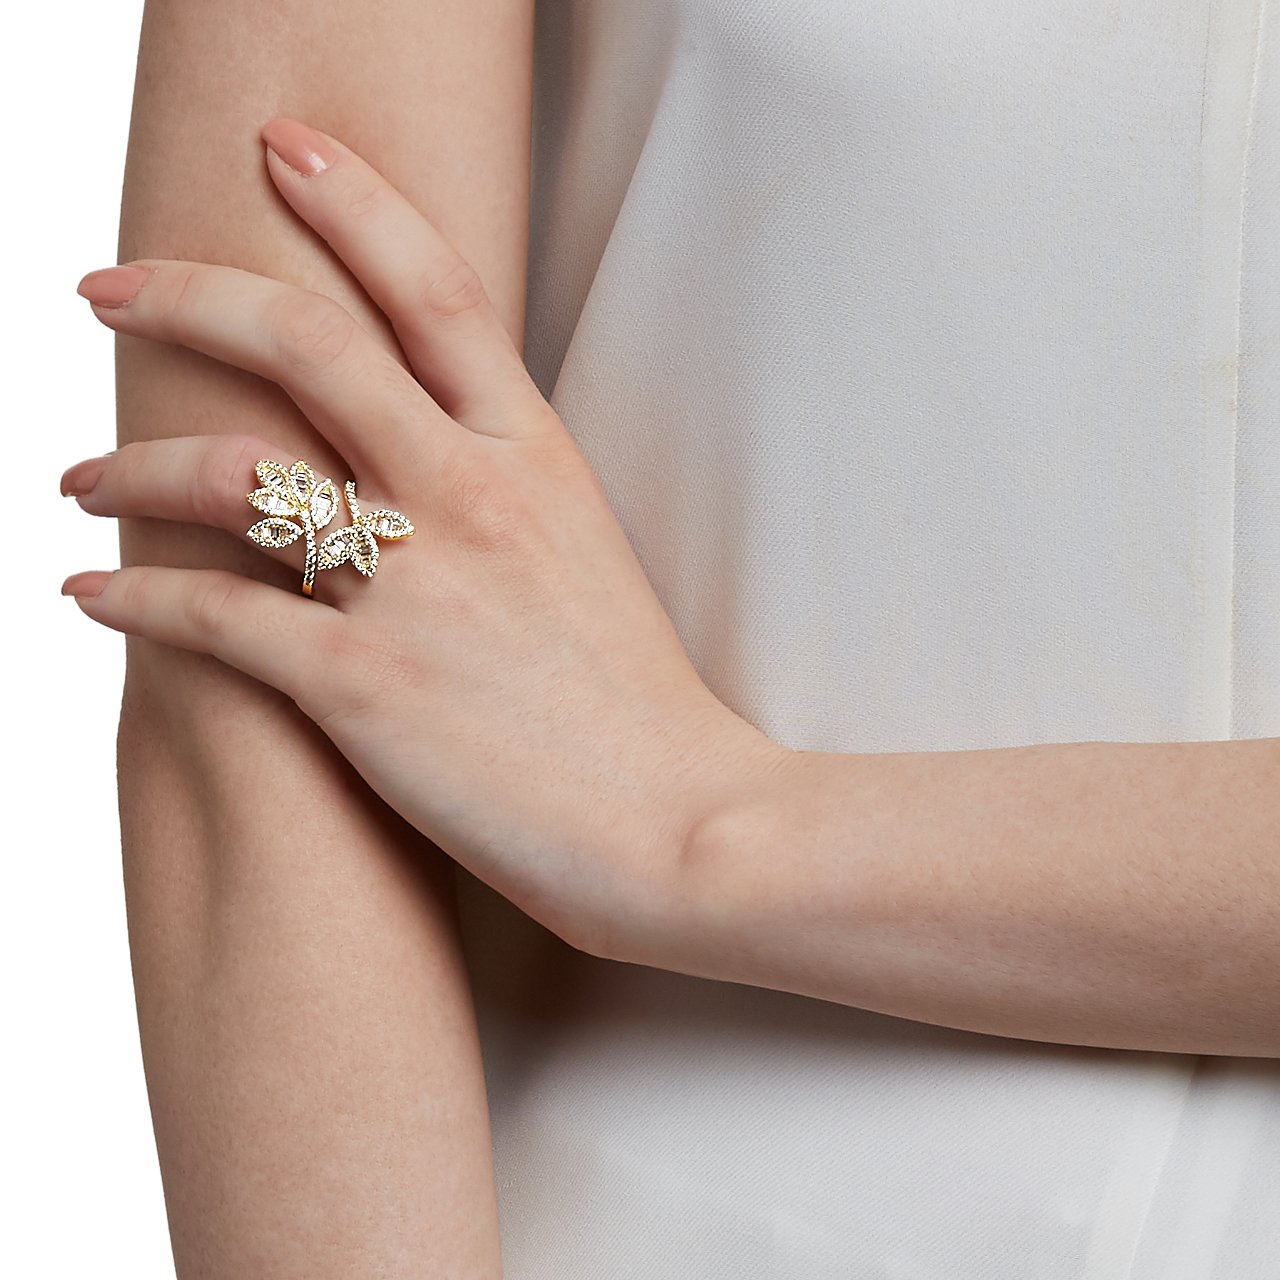 4dec44ee4 Amazon.com: shaze Hannah Gold Ring |Rings for Women Stylish|Ring for  Girlfriend: Jewelry